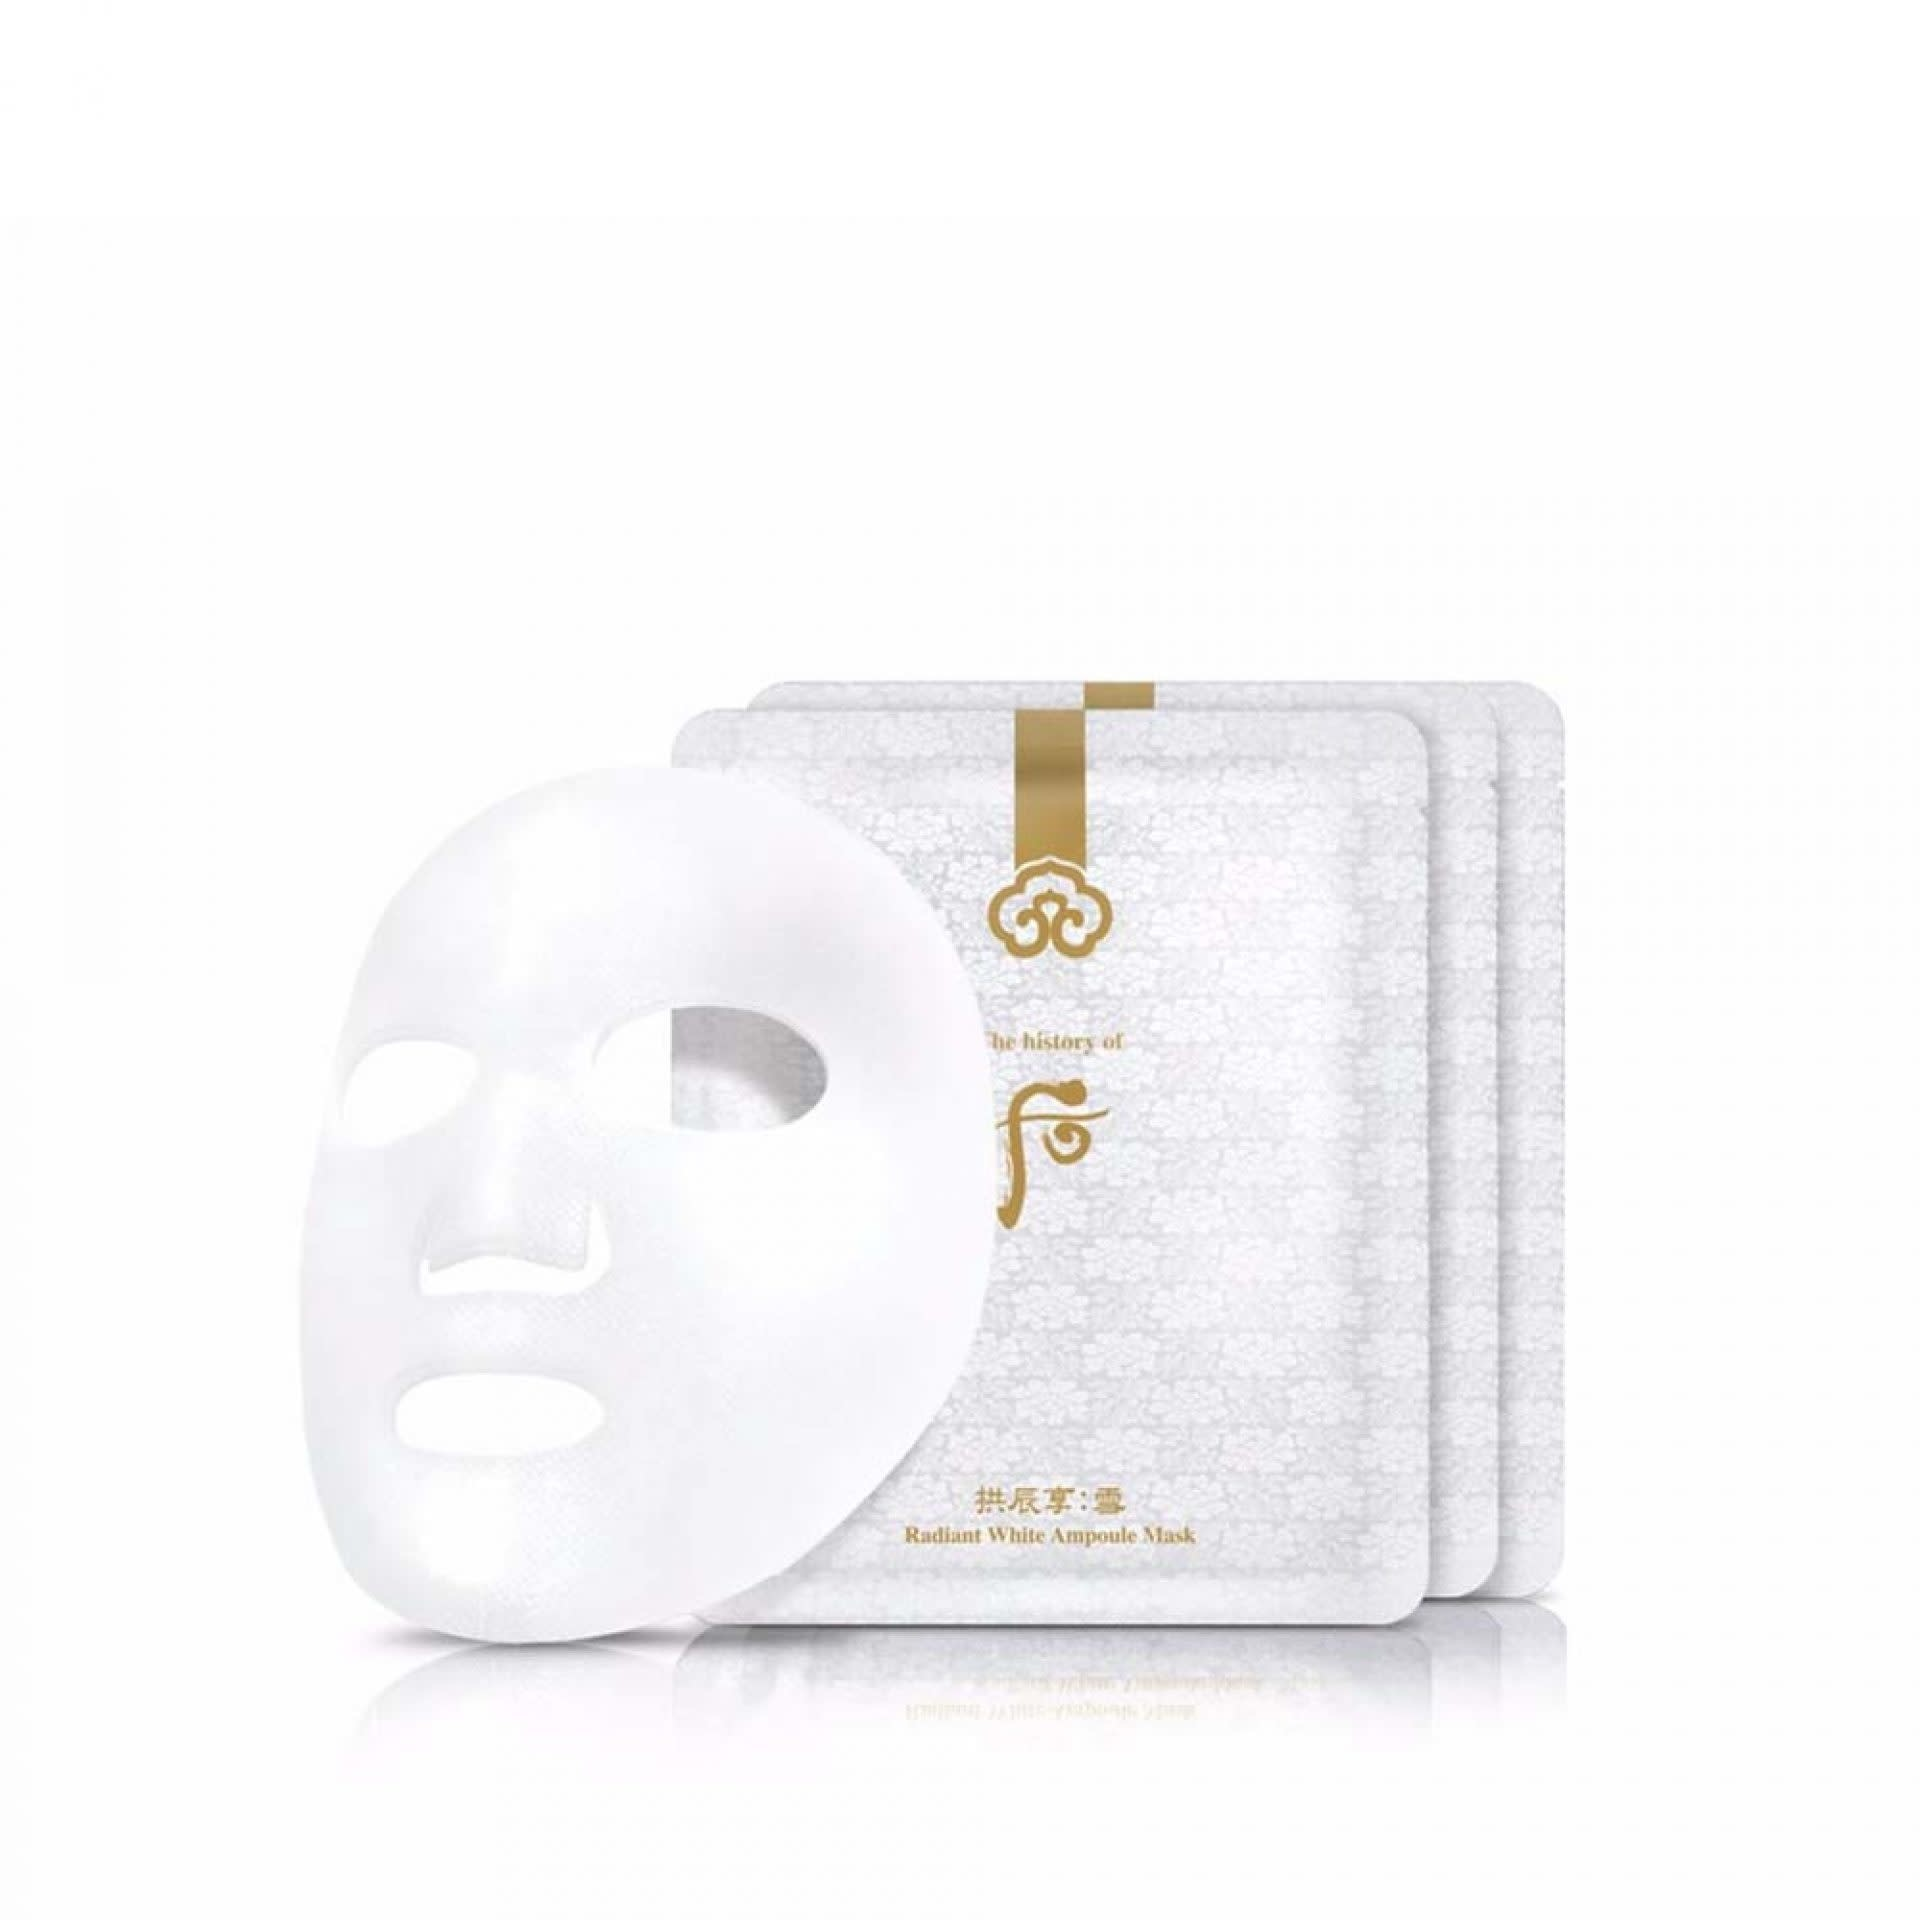 The History of Whoo WH GJH SEOL RADIANT WHITE AMPOULE MASK 8PCS - 51103705